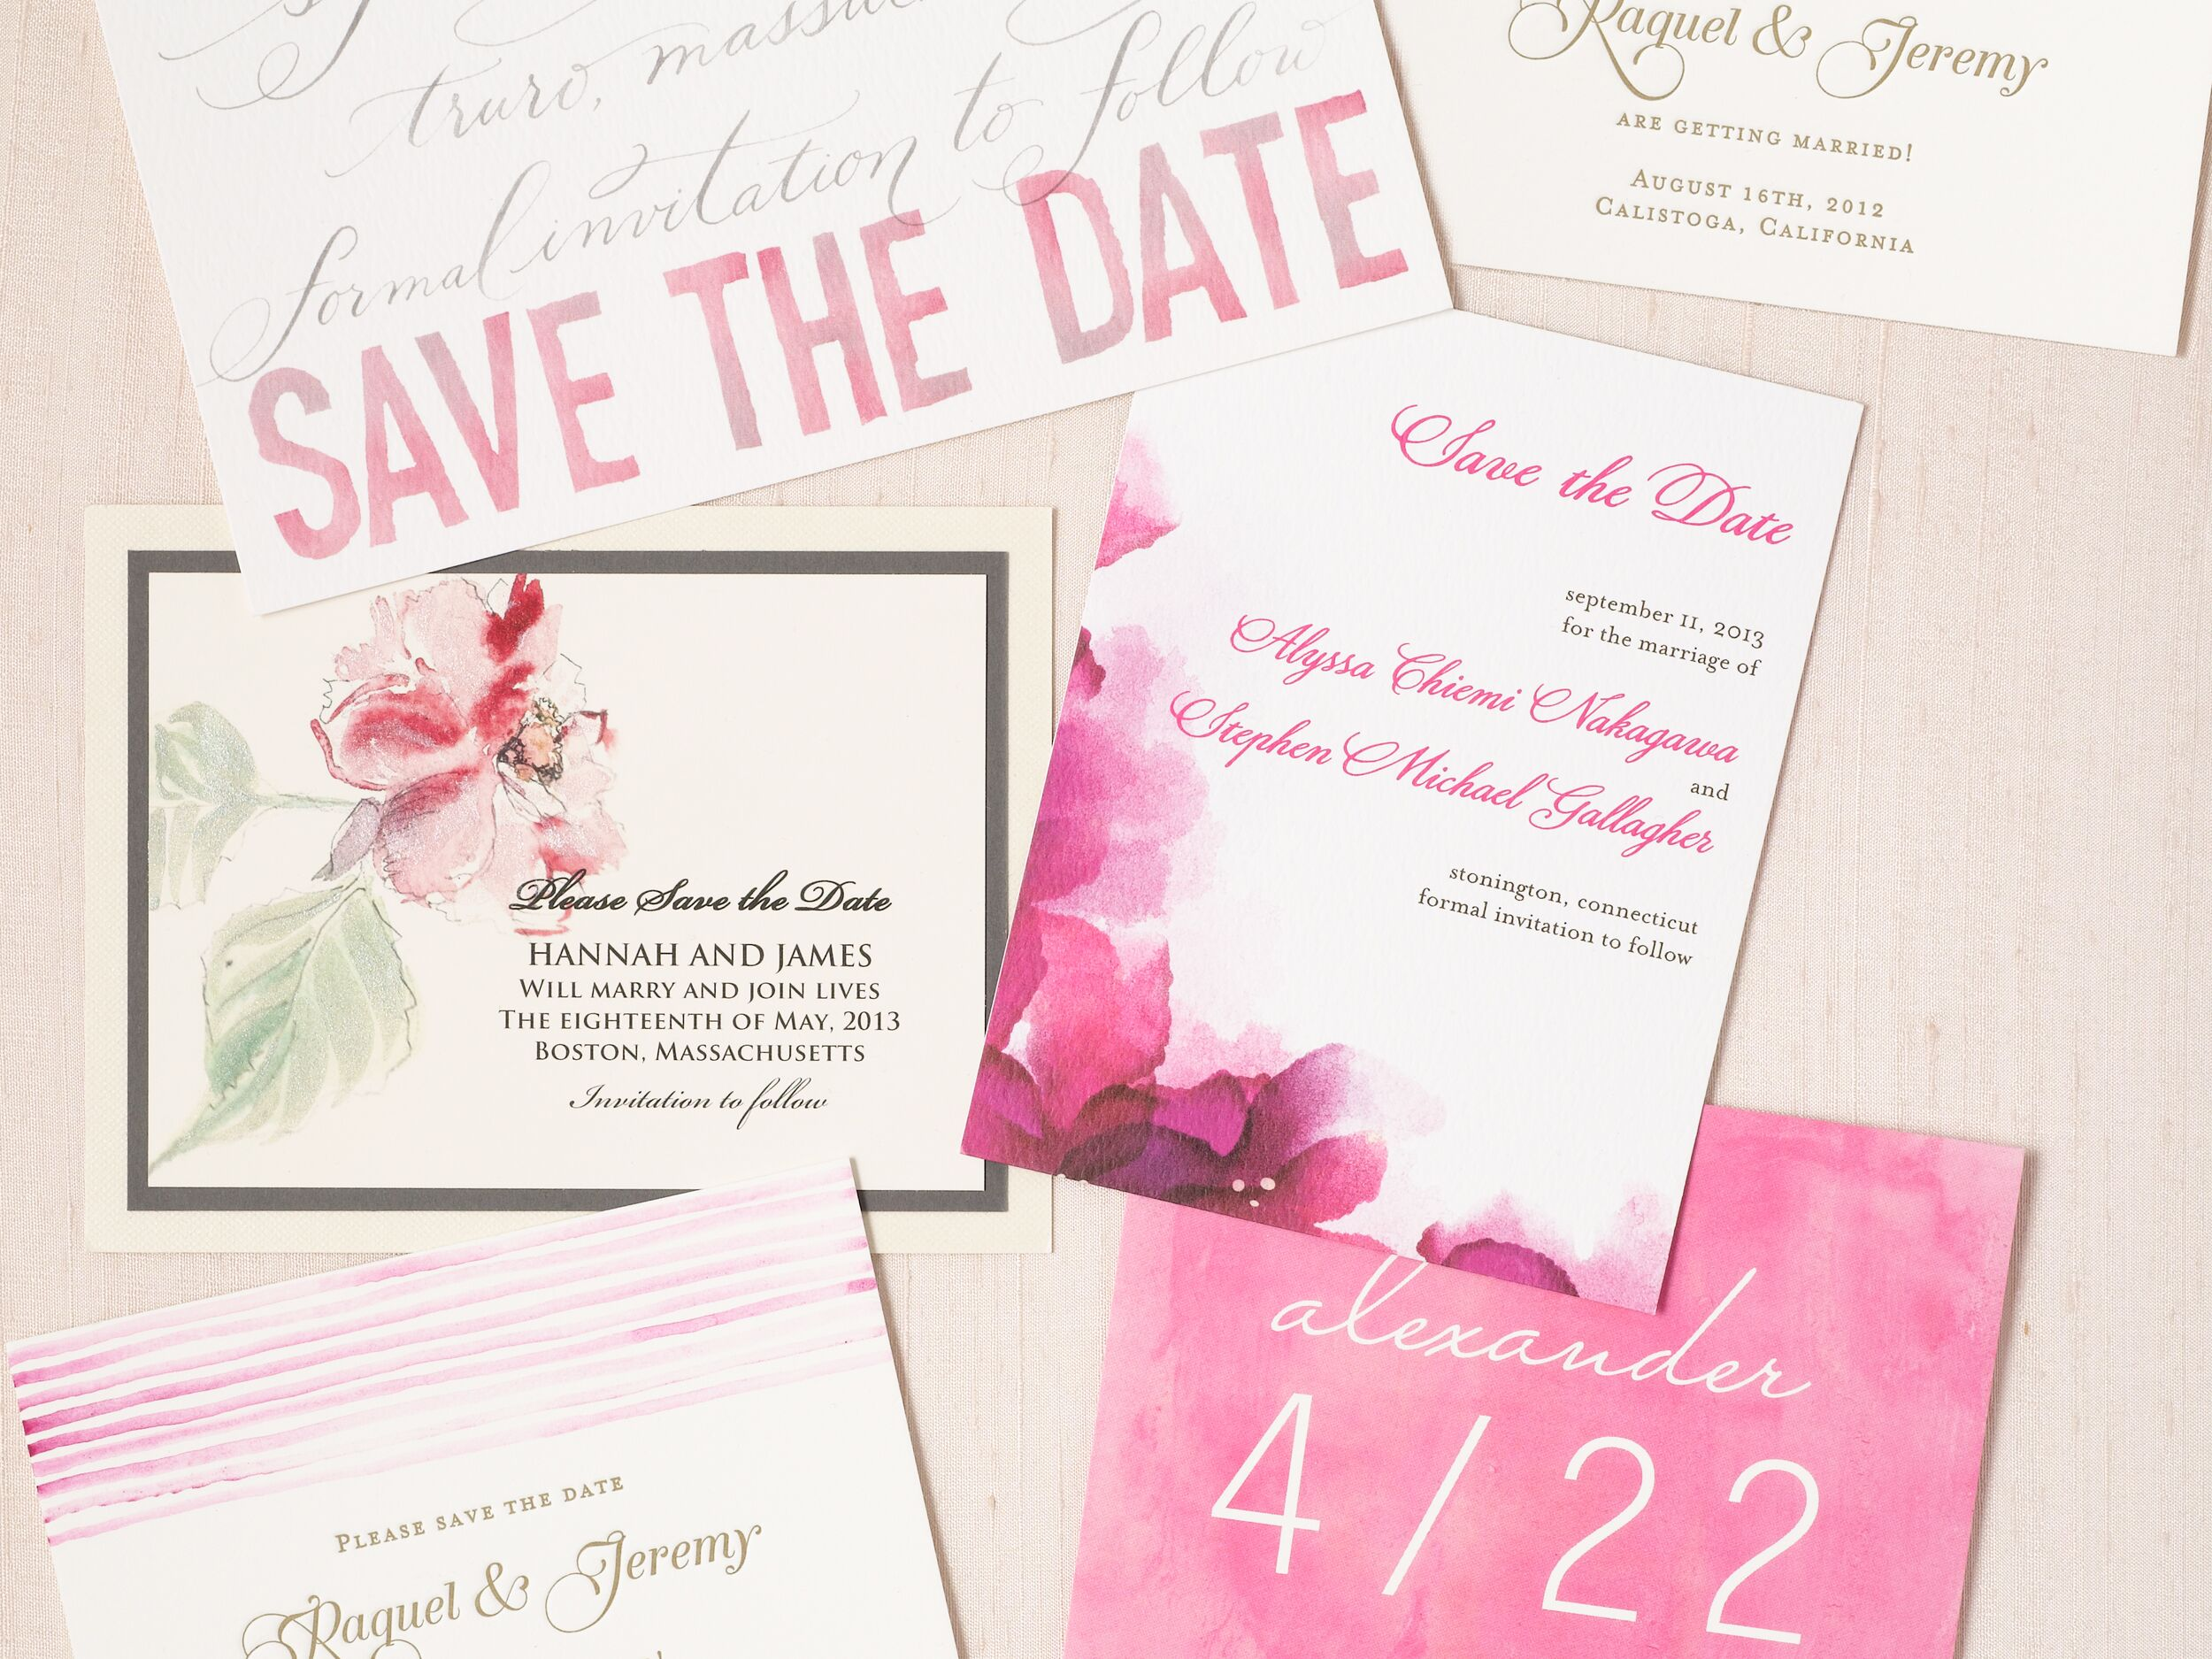 Save-the-Date Etiquette Tips: Save-the-Date Mistakes Not to Make